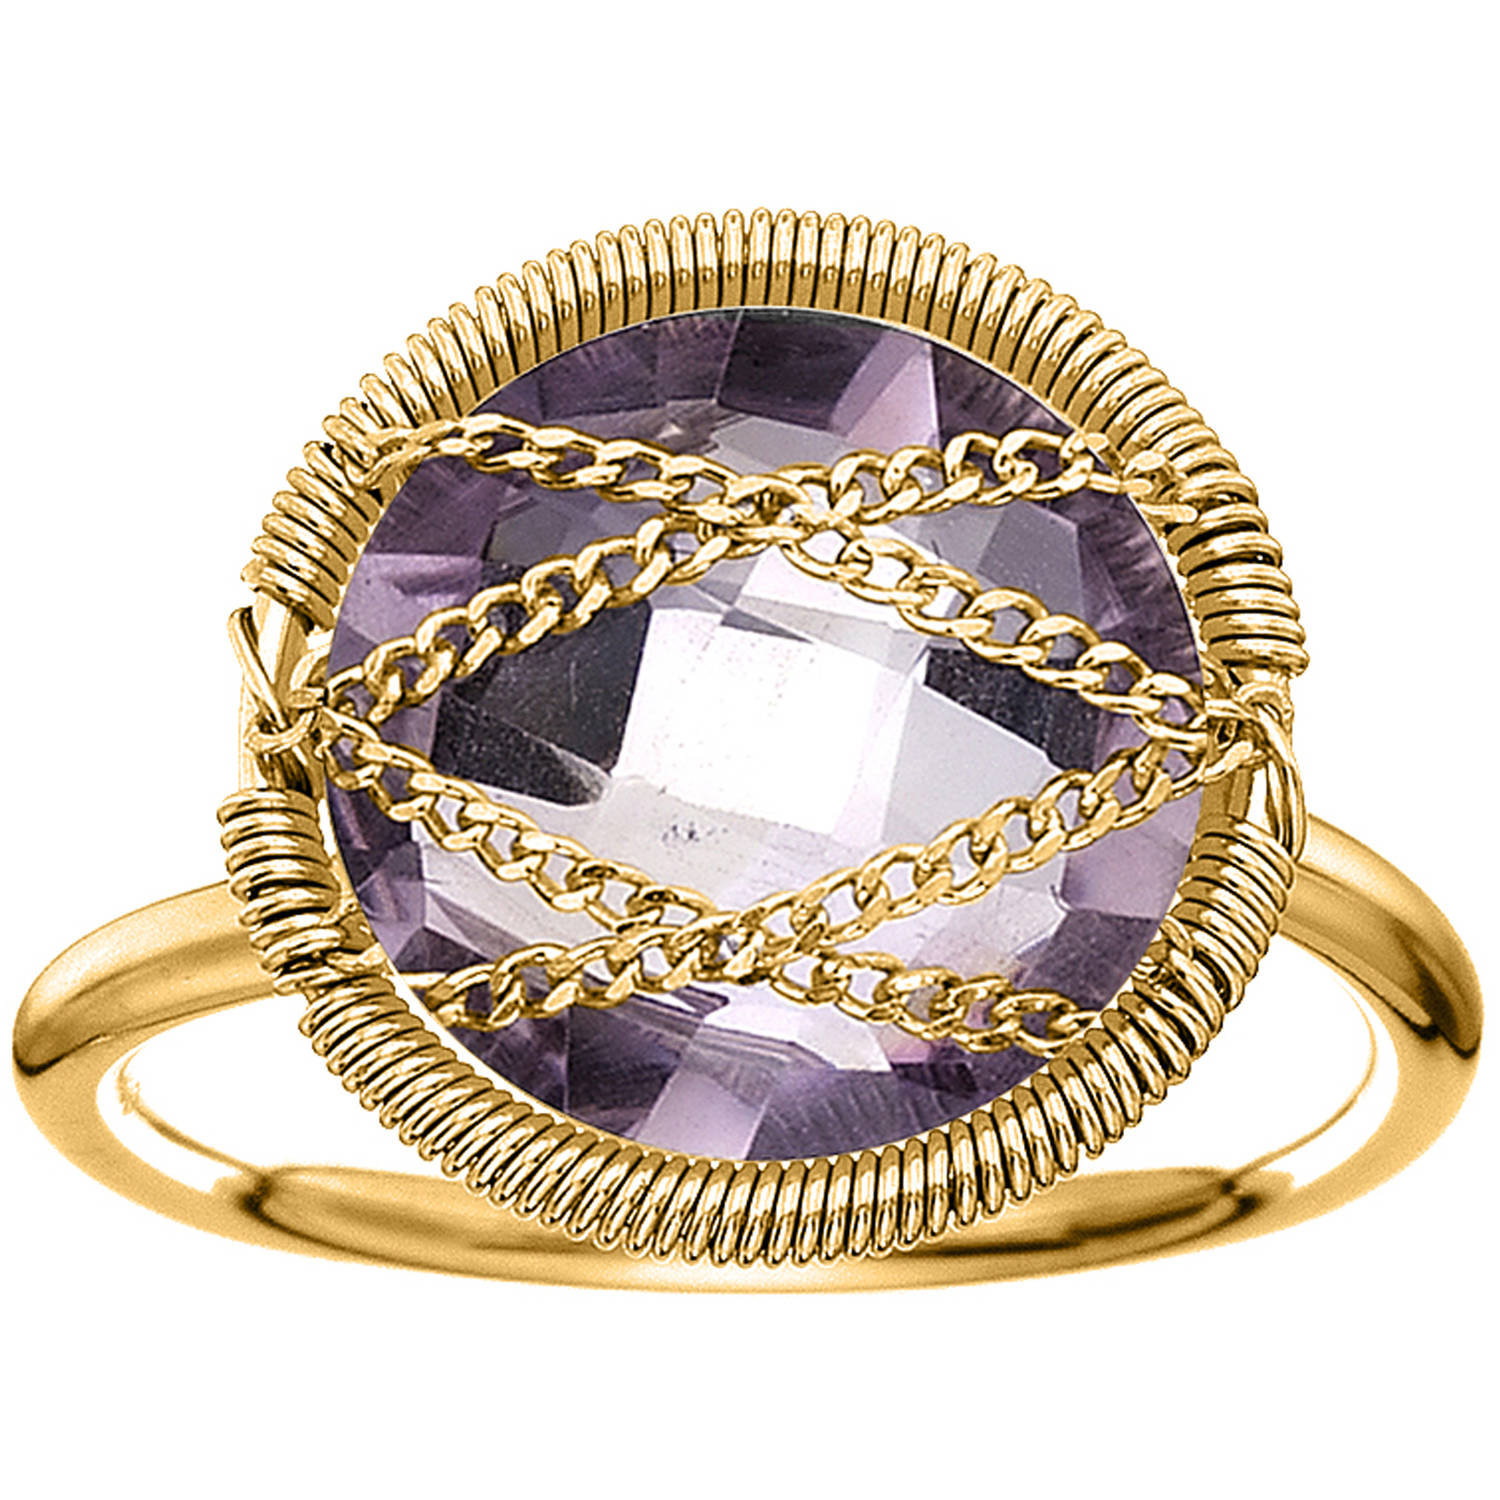 Image of 5th & Main 18kt Gold over Sterling Silver Hand-Wrapped Round Amethyst Stone Ring